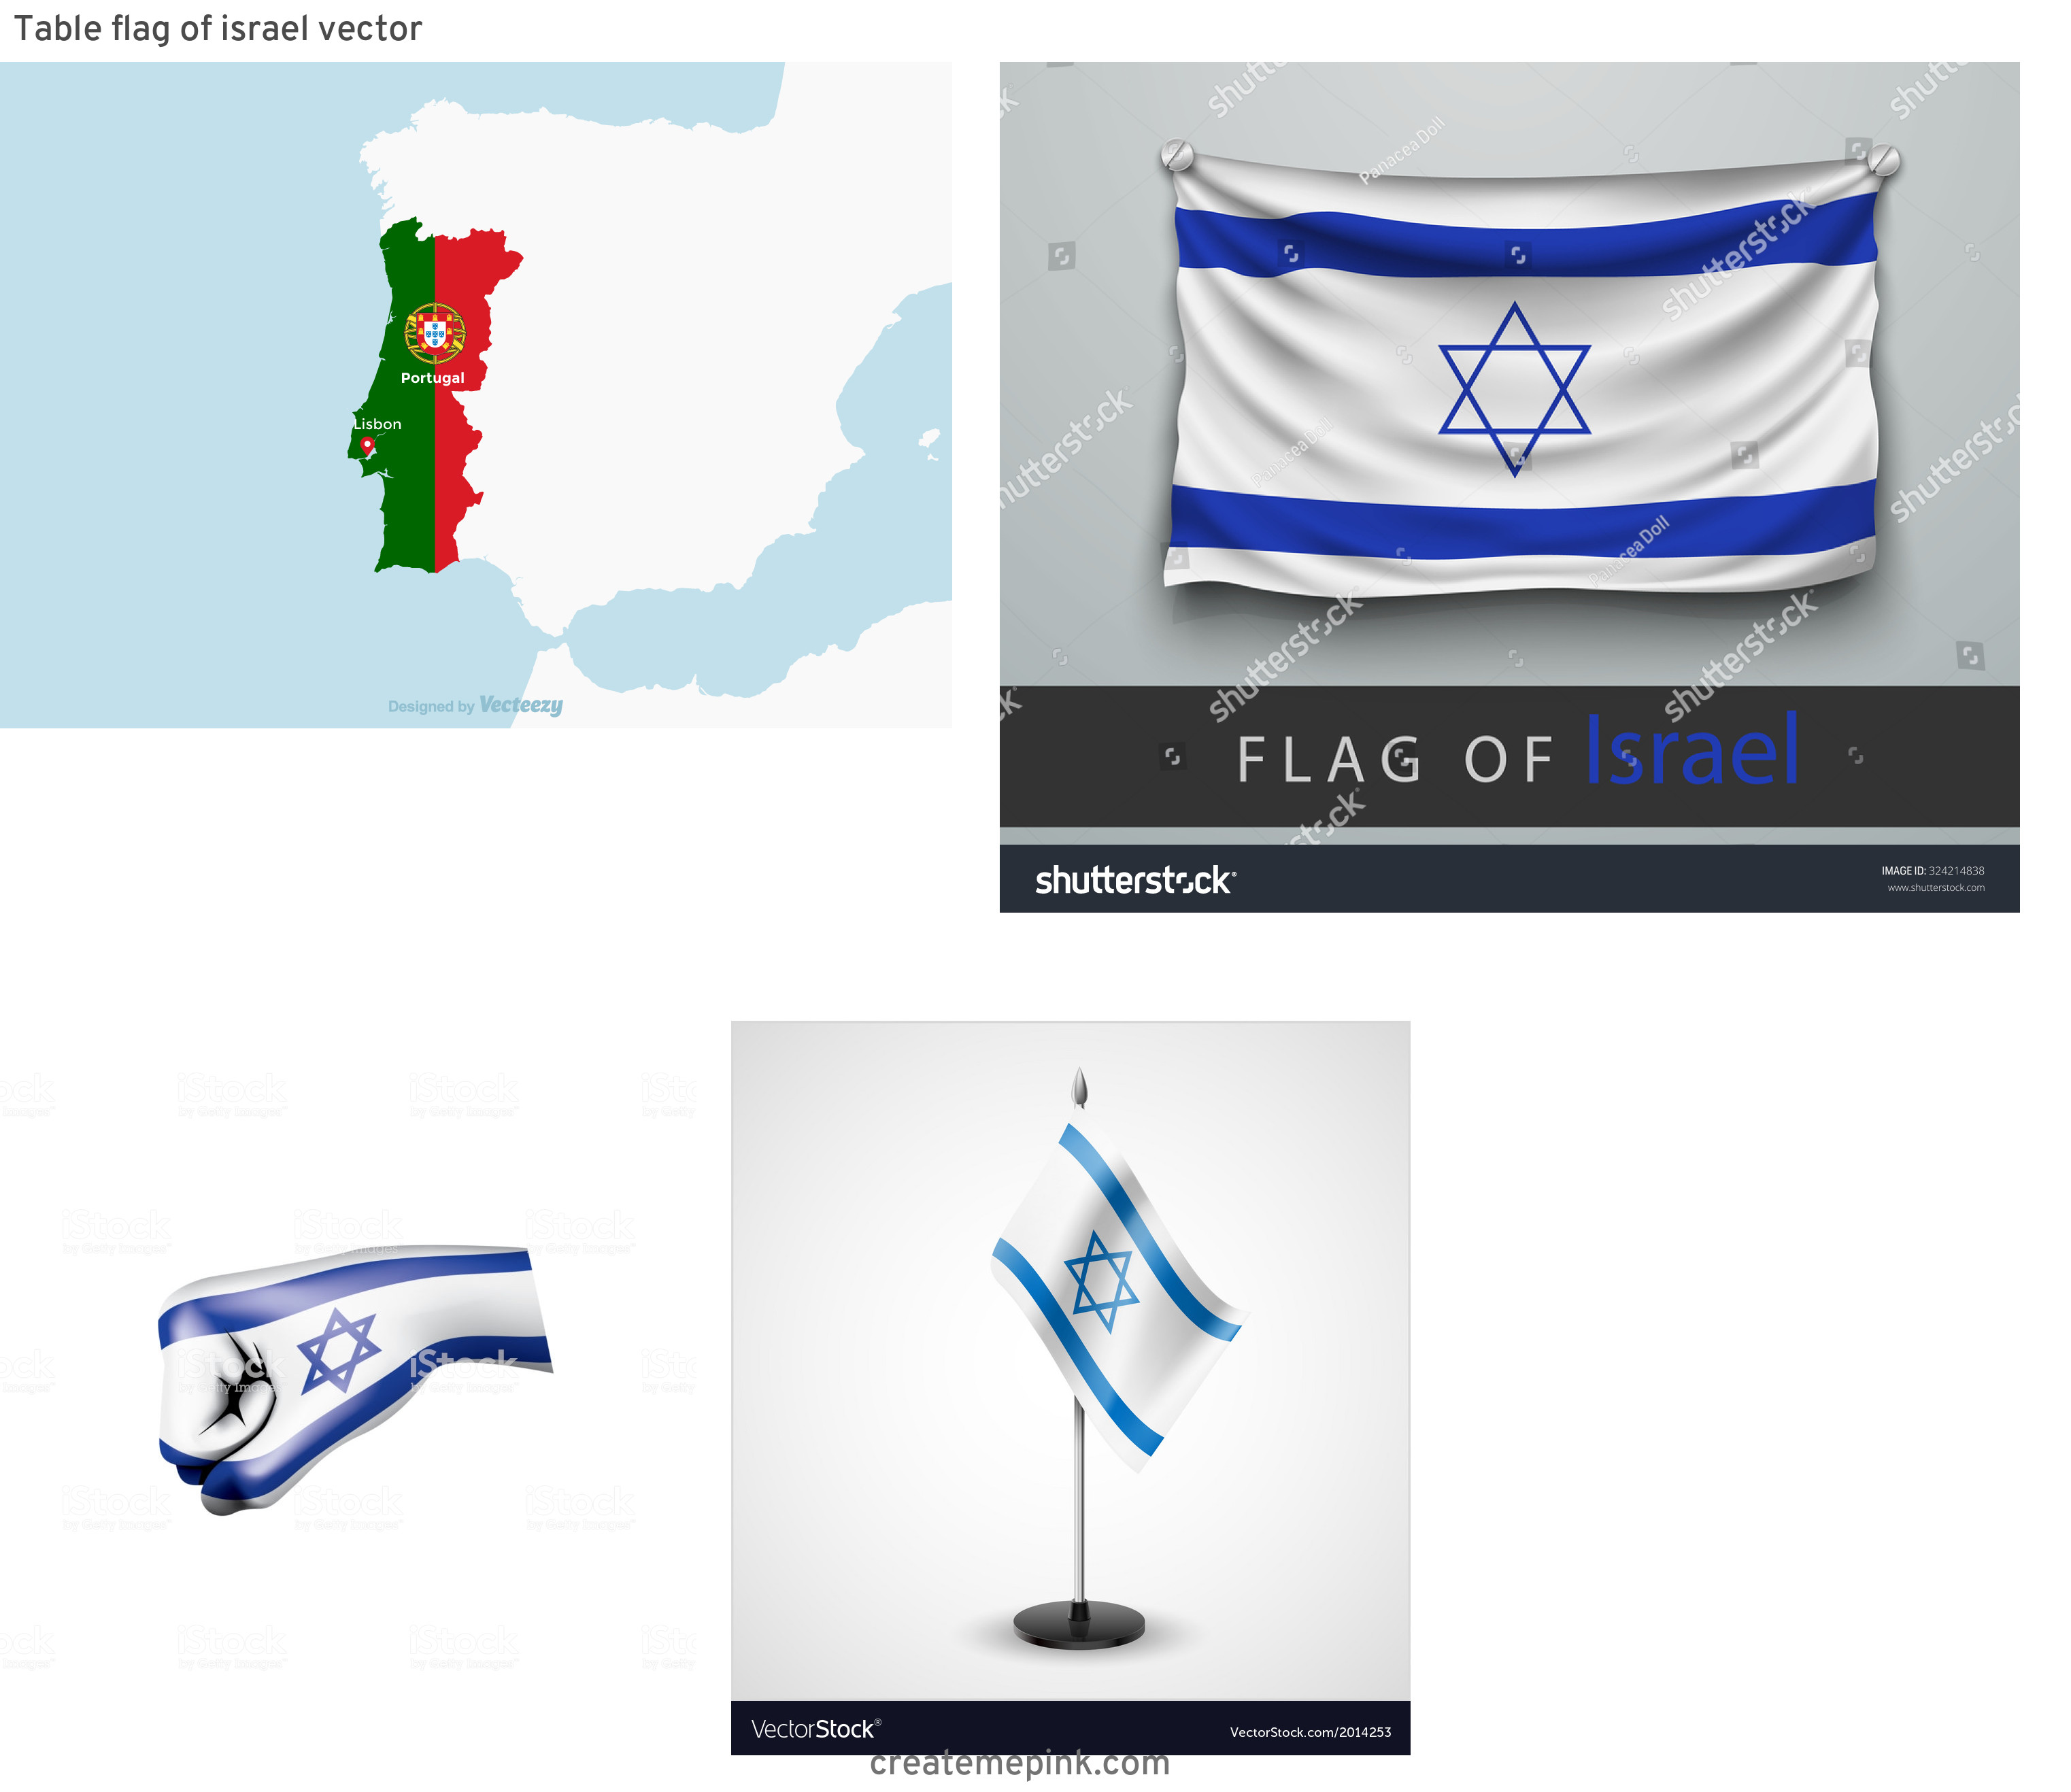 Israel And New Jersey Flag Vector: Table Flag Of Israel Vector